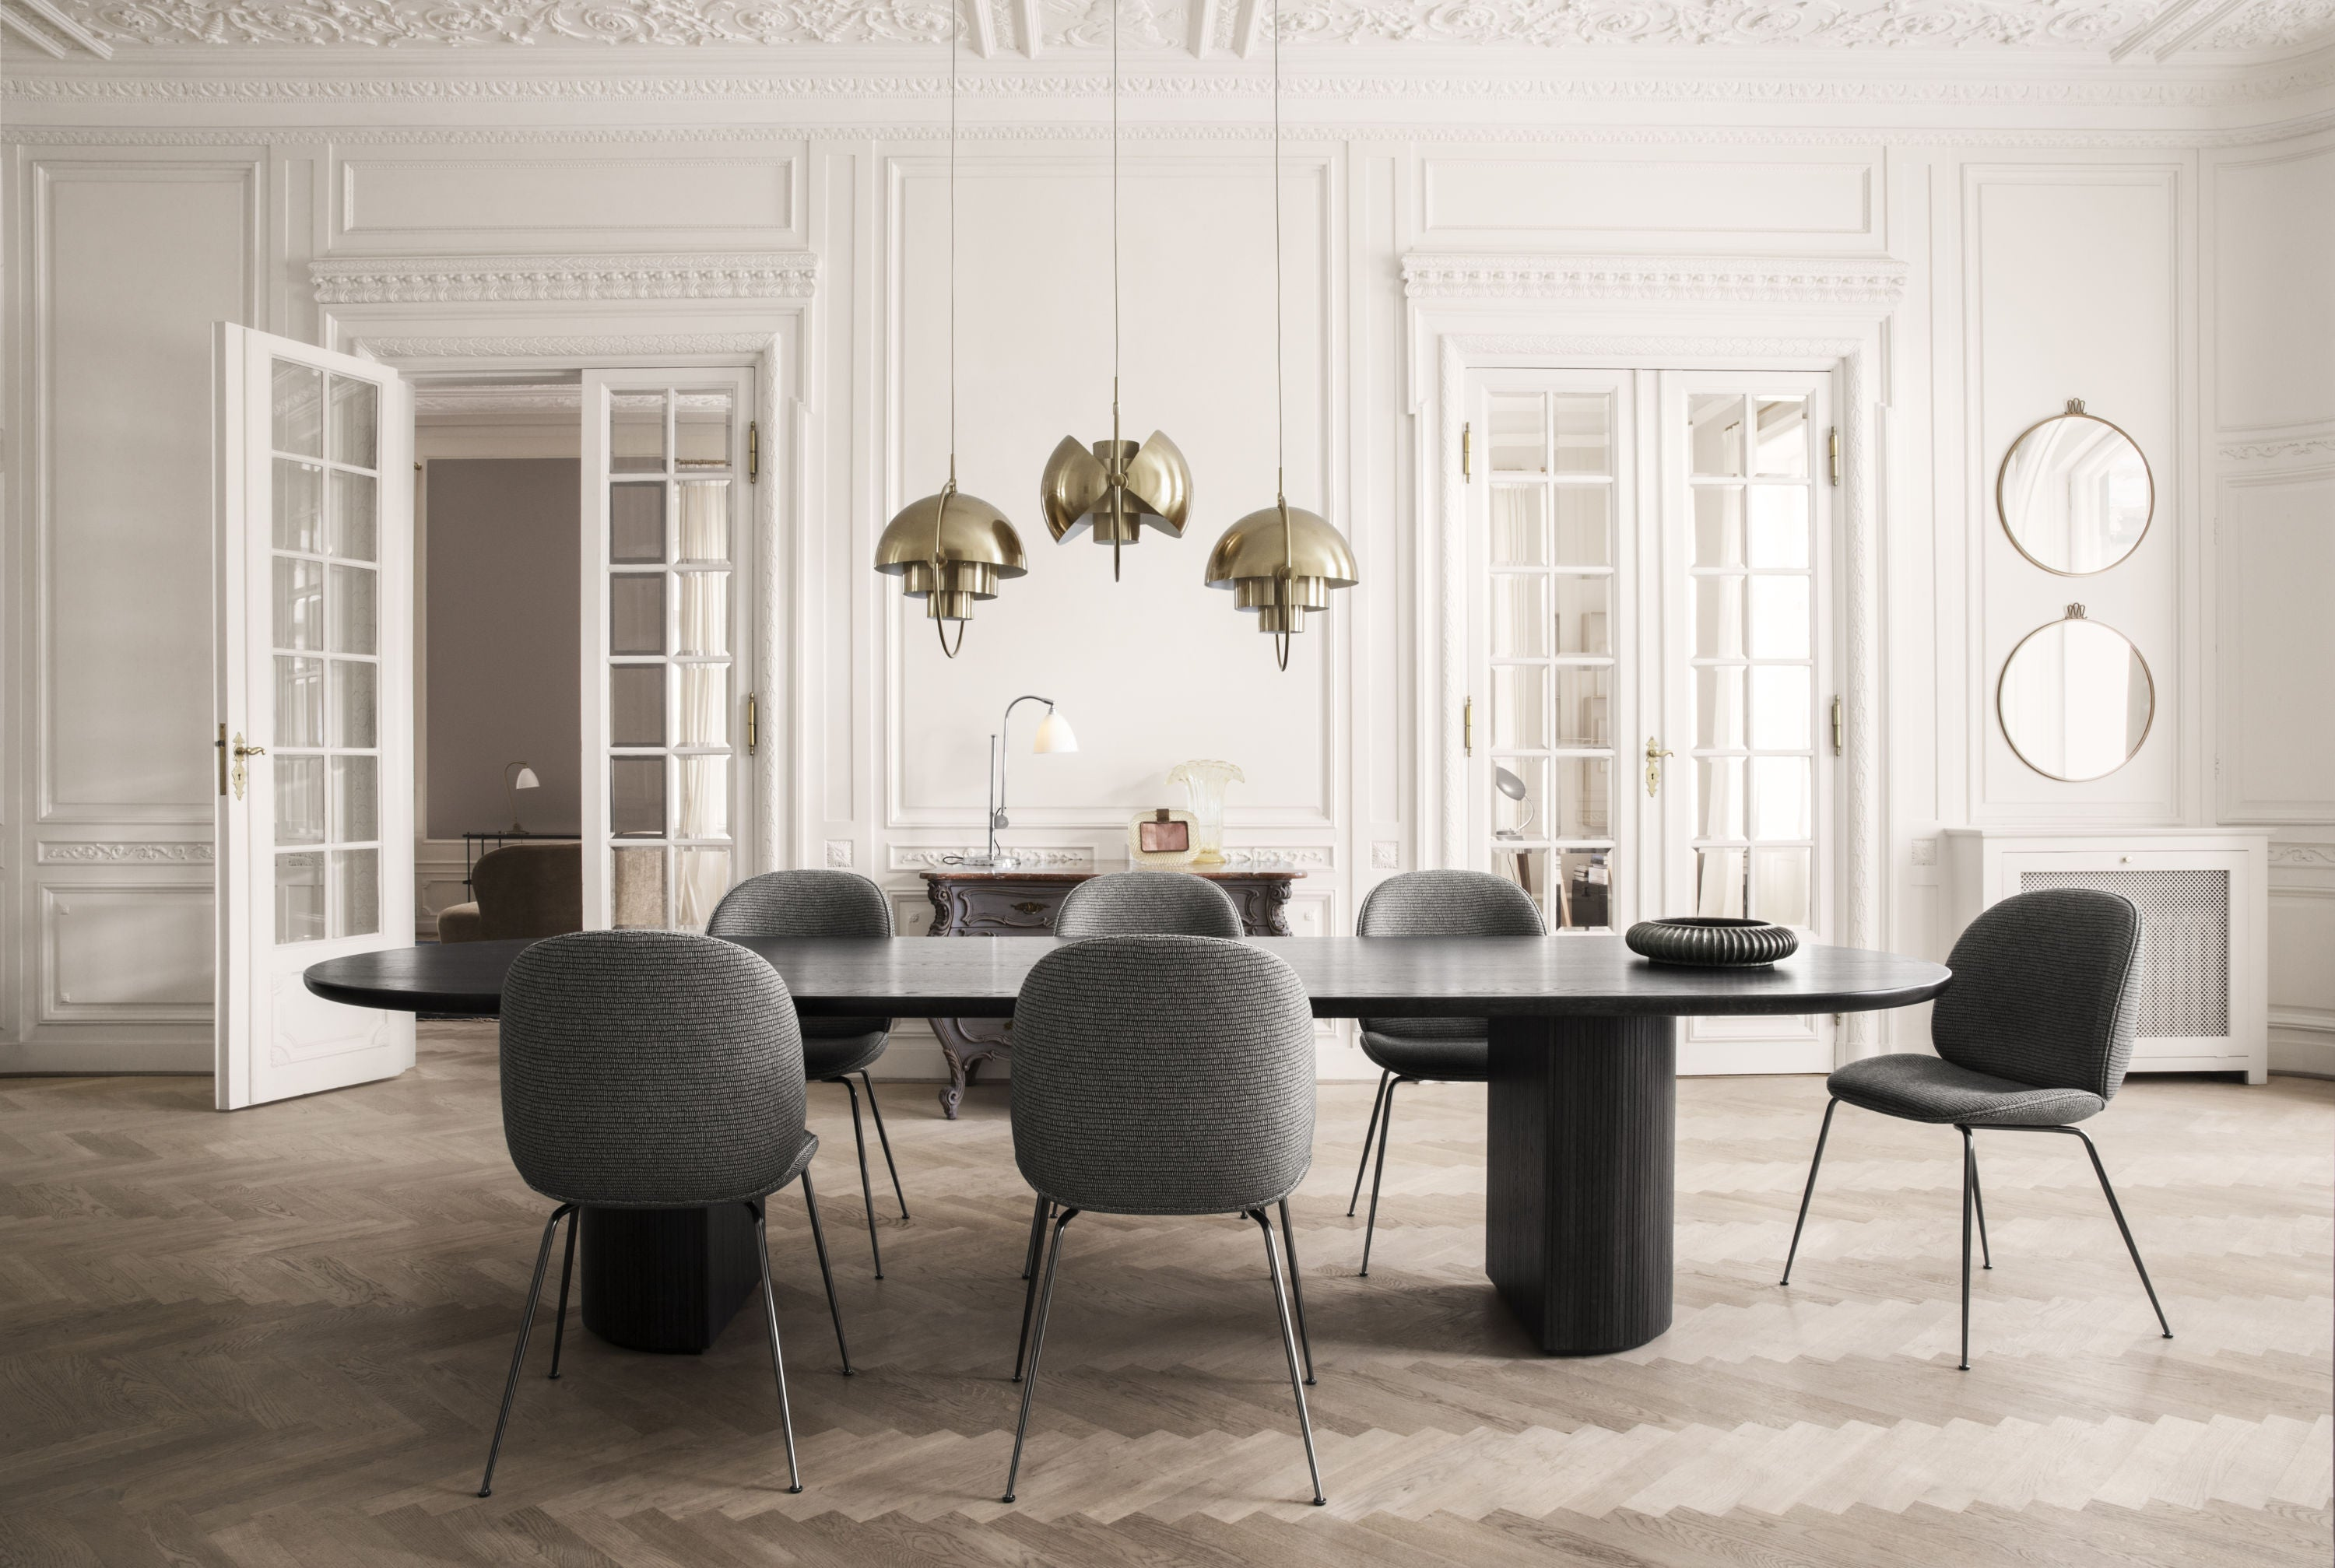 Moon Dining Table - Elliptical, 260x105 - Brown/Black Stained Veneer Lacquered fra GUBI